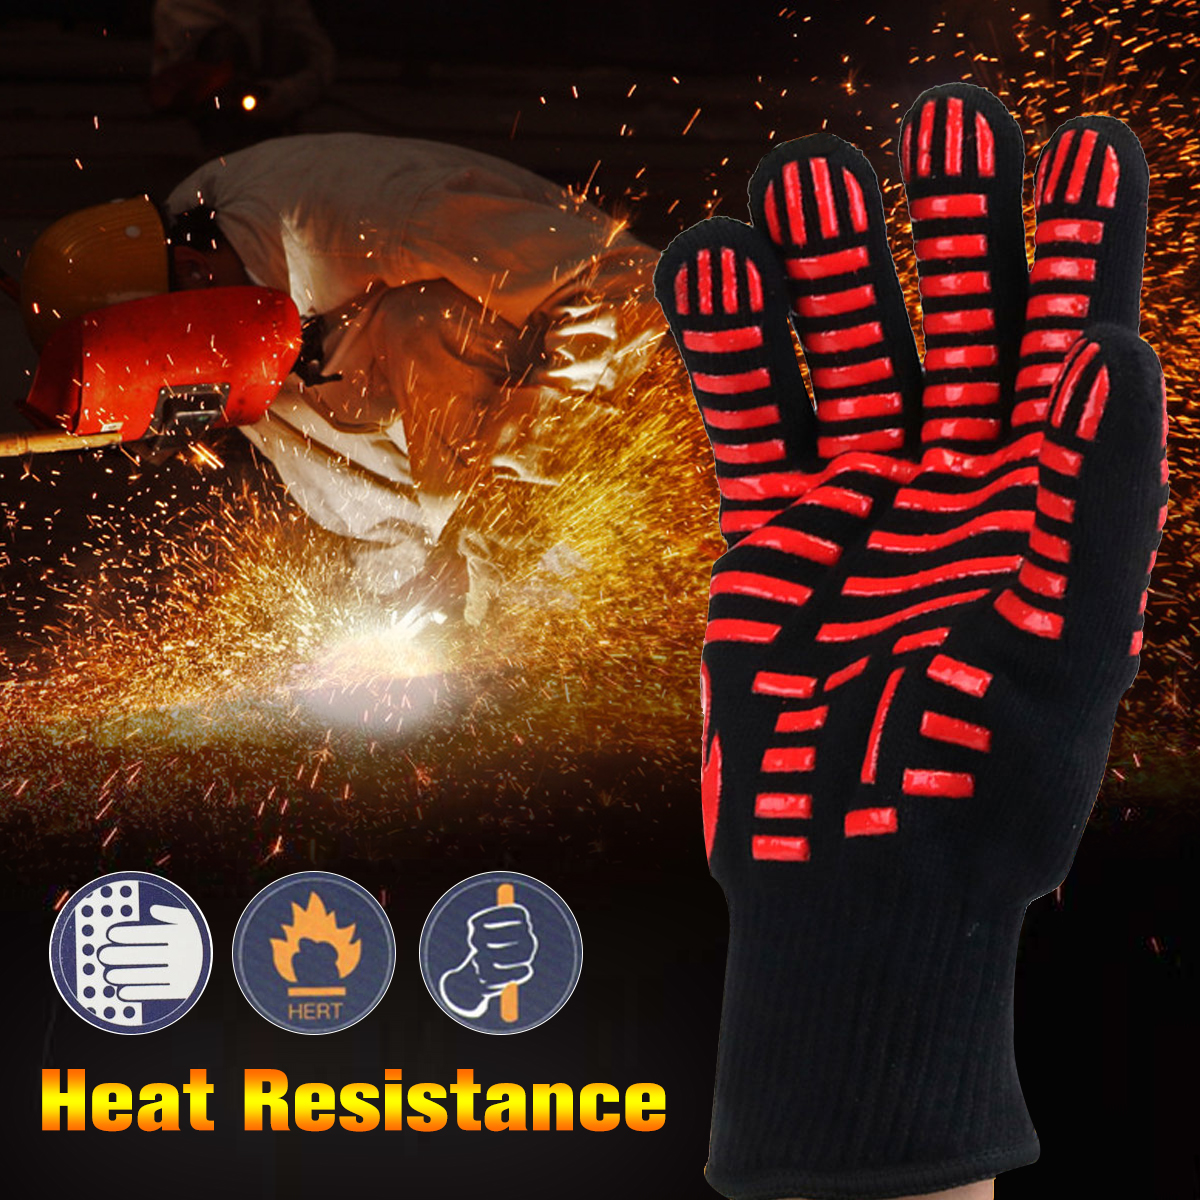 Fire Insulation Safety Gloves Heat Resistant Glove Aramid BBQ Glove Oven Kitchen Glove Direct Supply Forearm Protection купить в Москве 2019